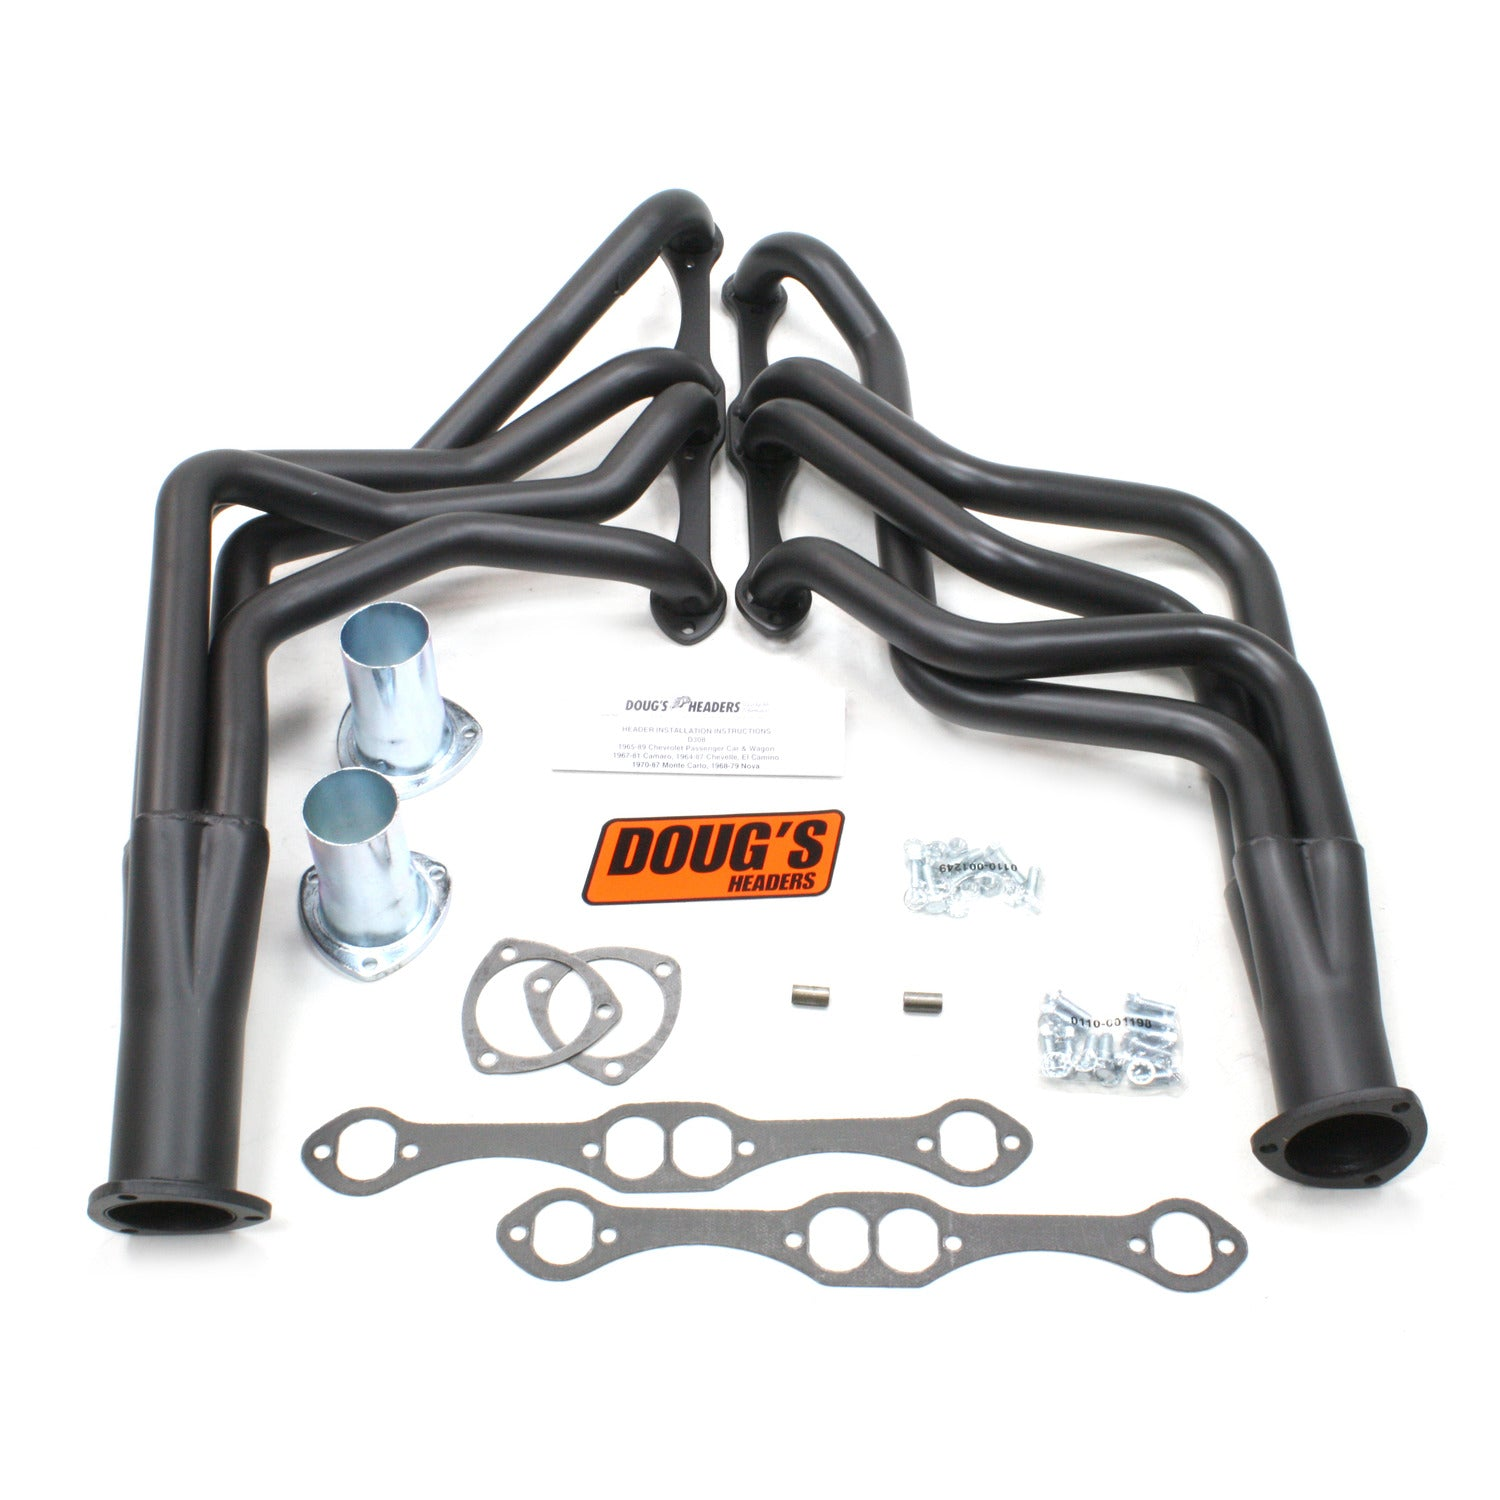 "Doug's Headers D308-B 1 5/8"" 4-Tube Full Length Header Chevrolet 67-81 Camaro 64-77 Chevelle/Malibu 64-77 El Camino 70-77 Monte Carlo 65-89 Passenger Car/Wagon 265-400 Chevrolet Engine Hi-Temp Black Coating"